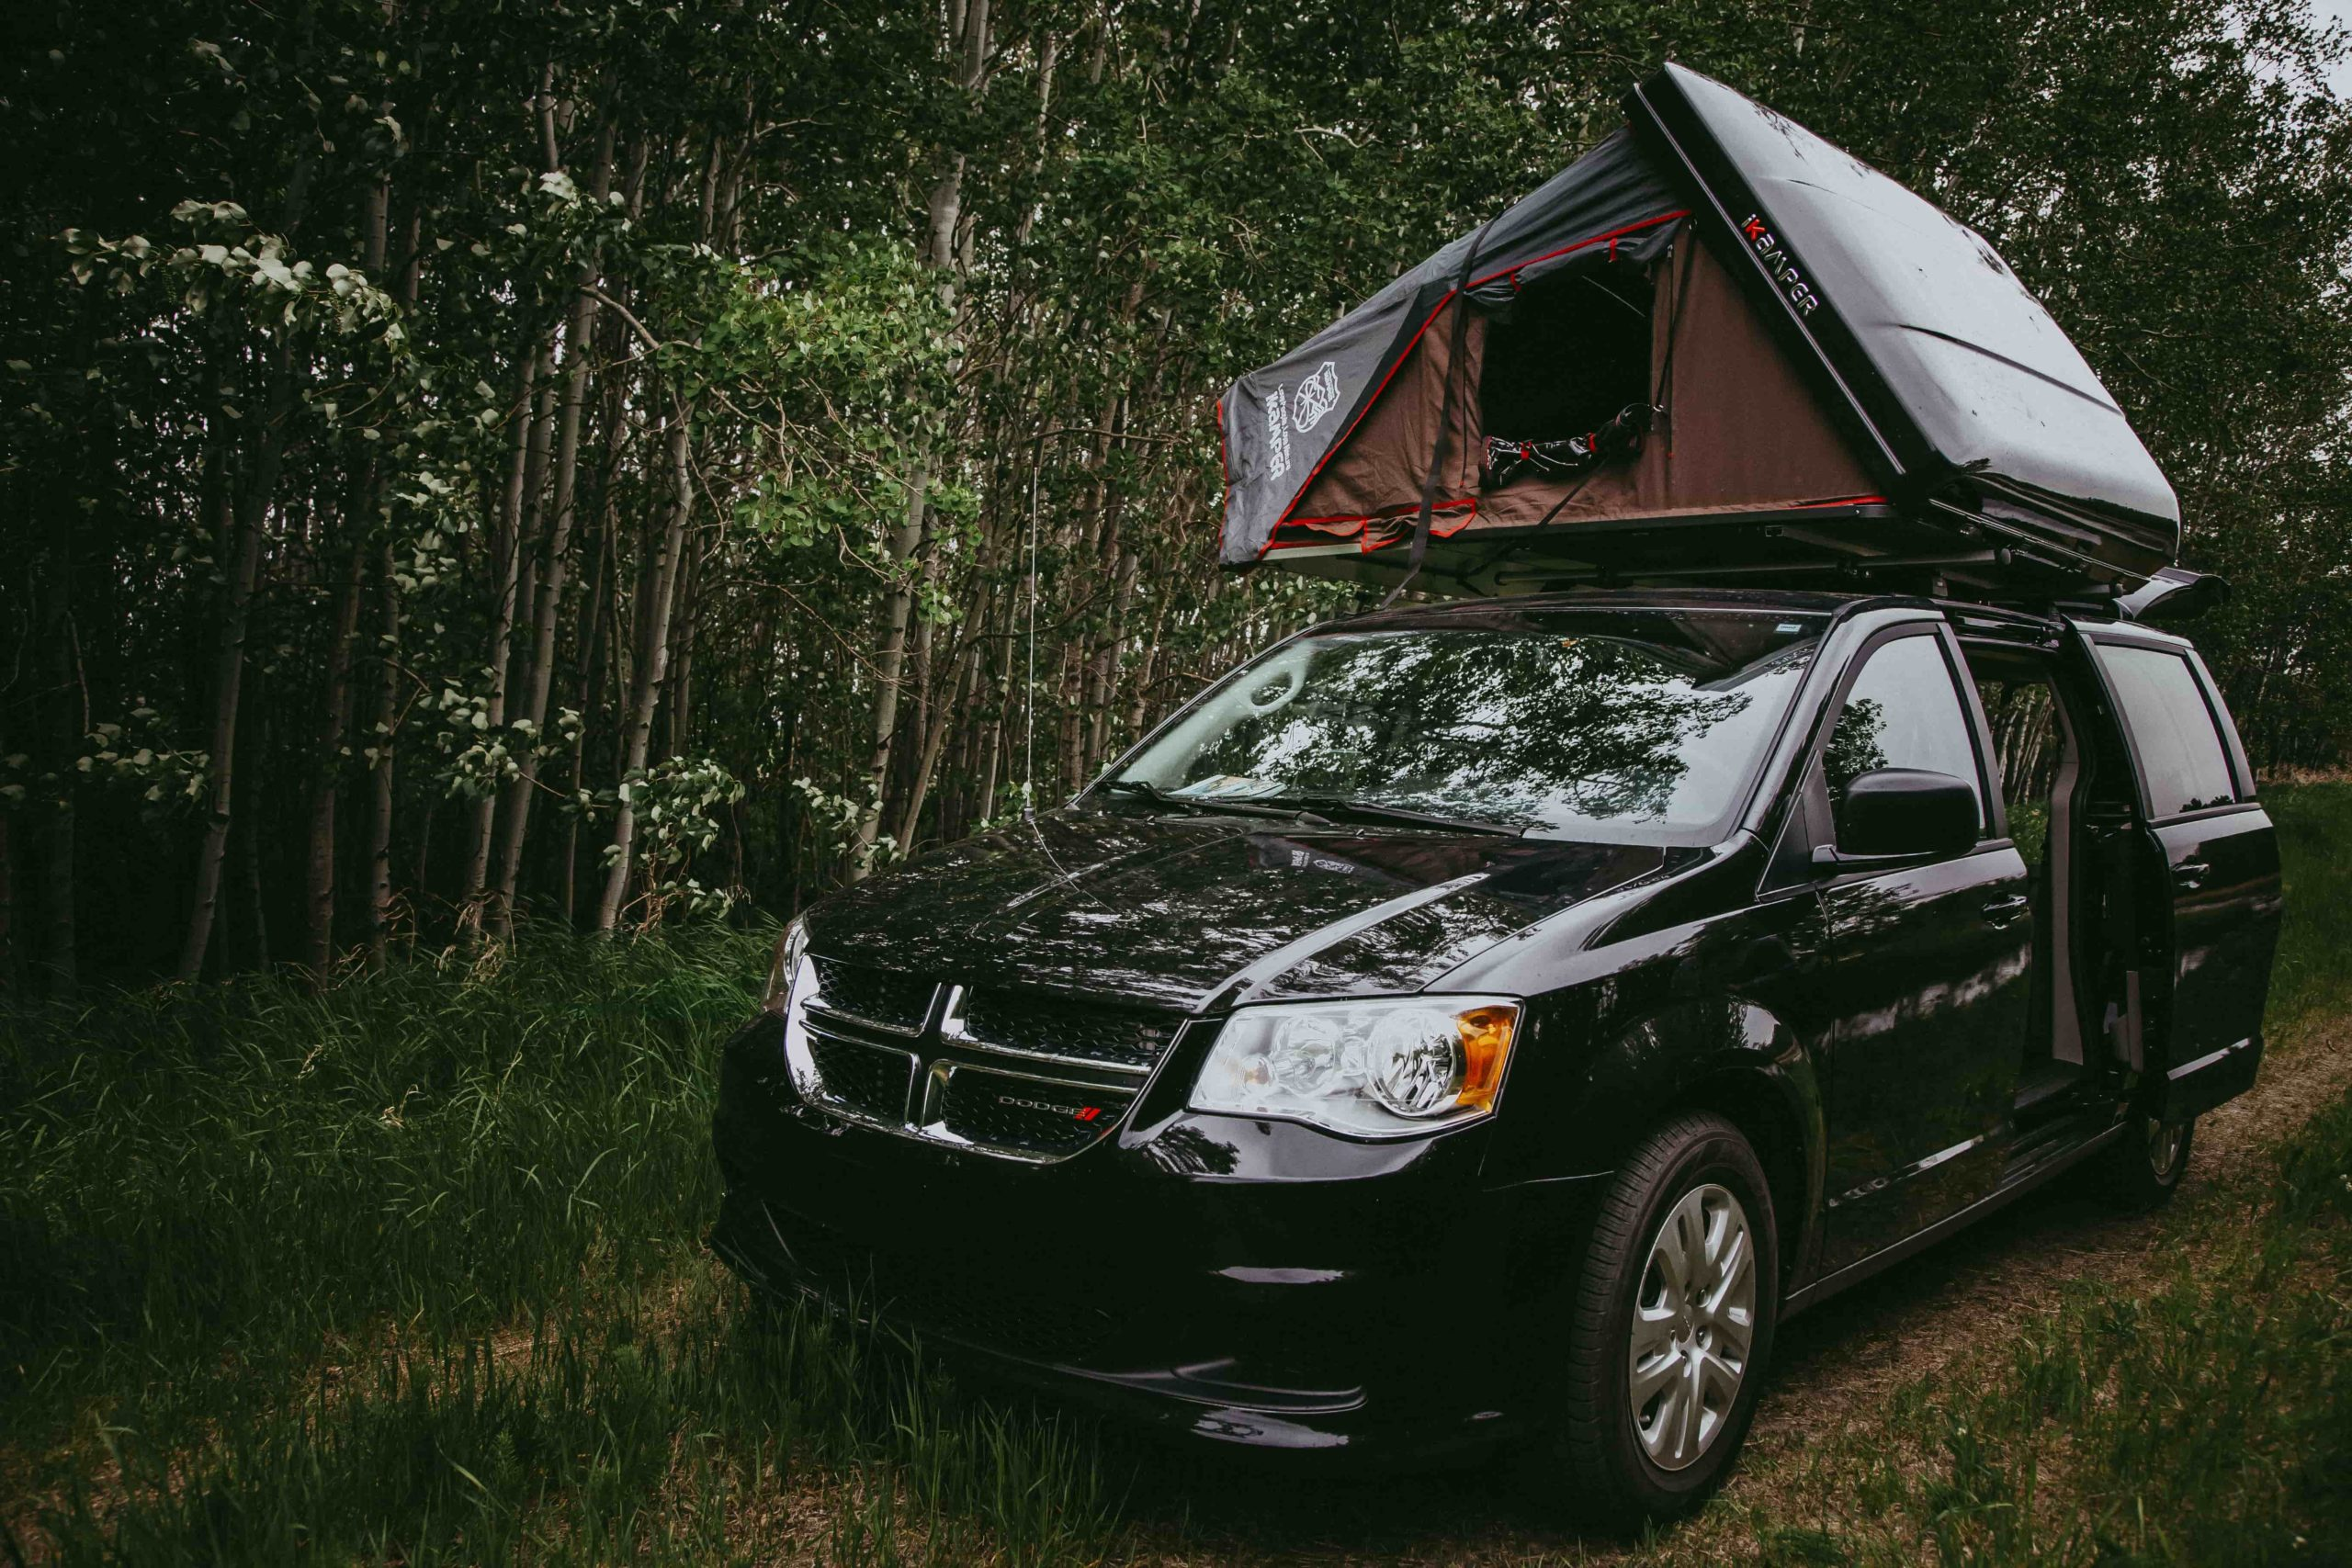 North Campervans The Whatever You Want It To Be Van Rental iKamper Rooftop Tent